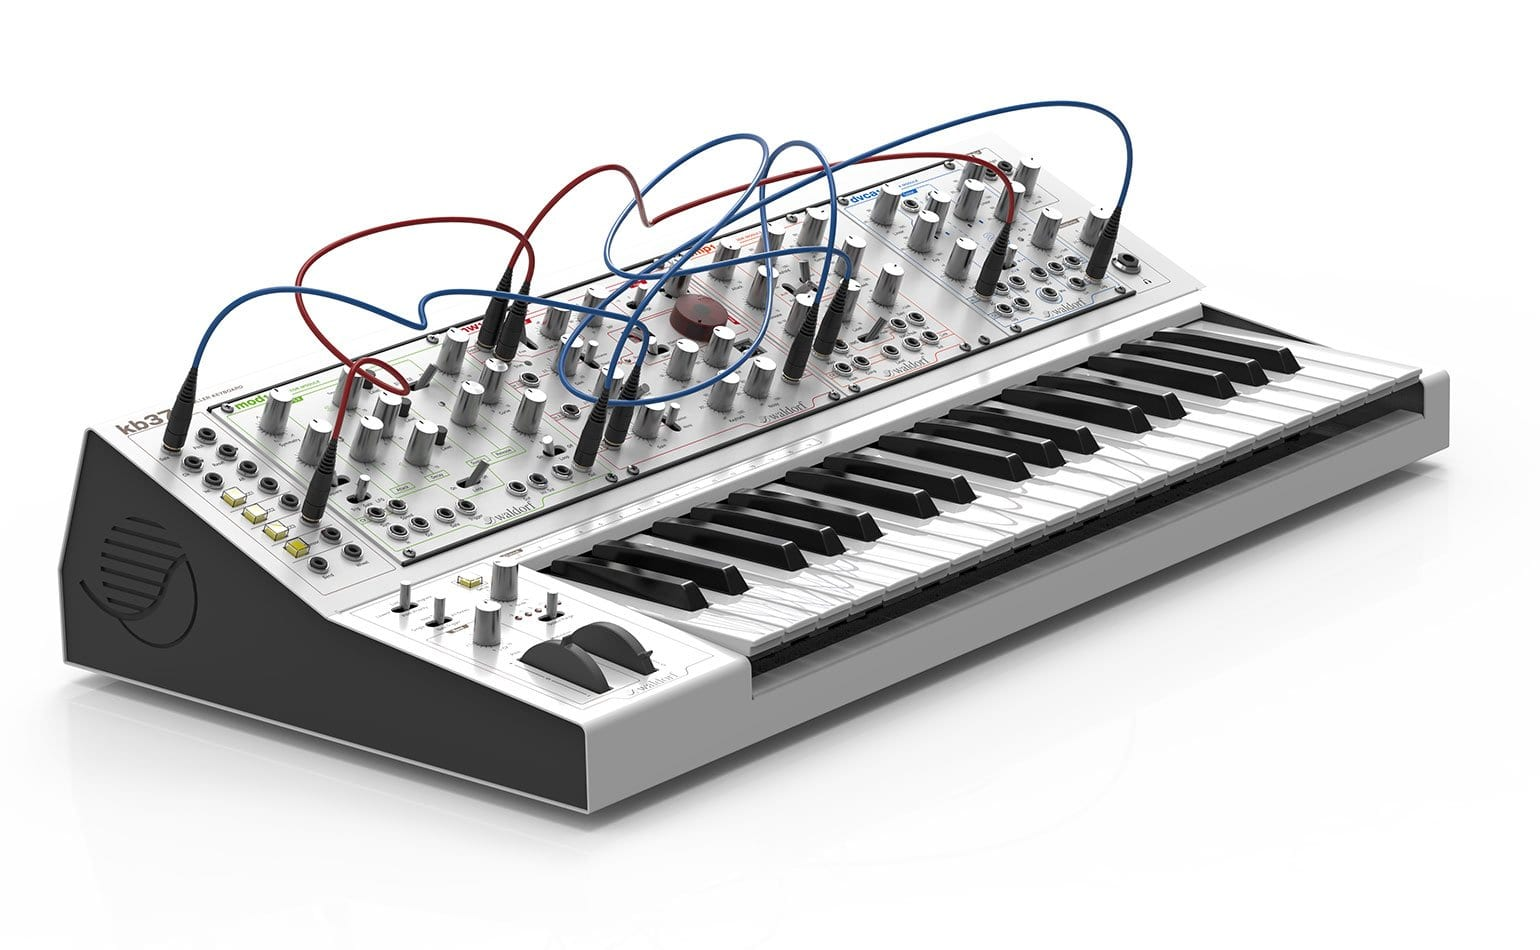 top 5 modular synths for beginners. Black Bedroom Furniture Sets. Home Design Ideas